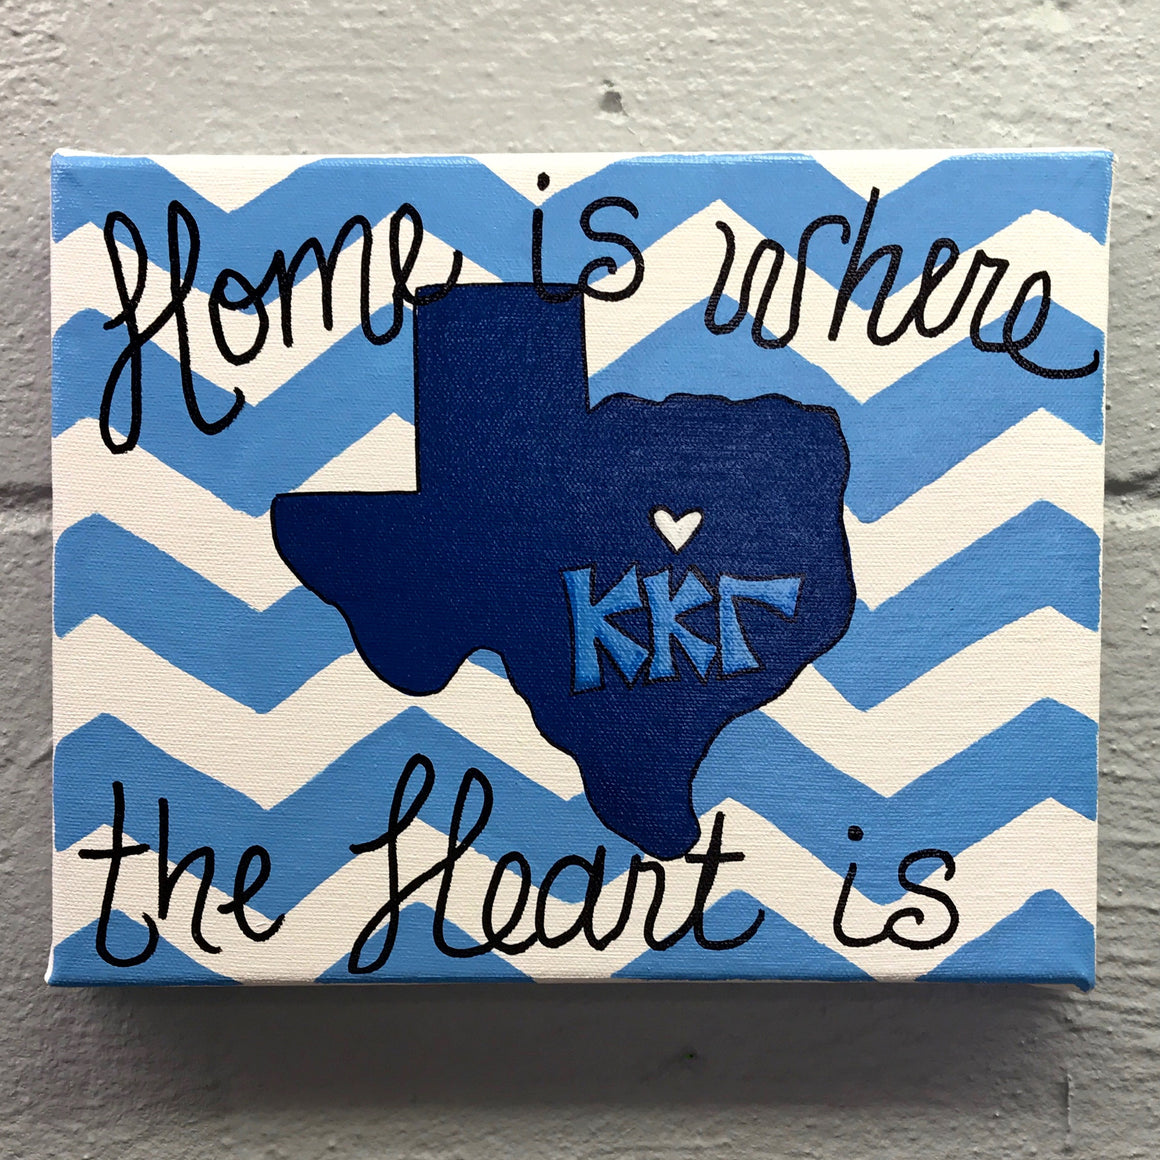 Home is where Kappa Kappa Gamma is